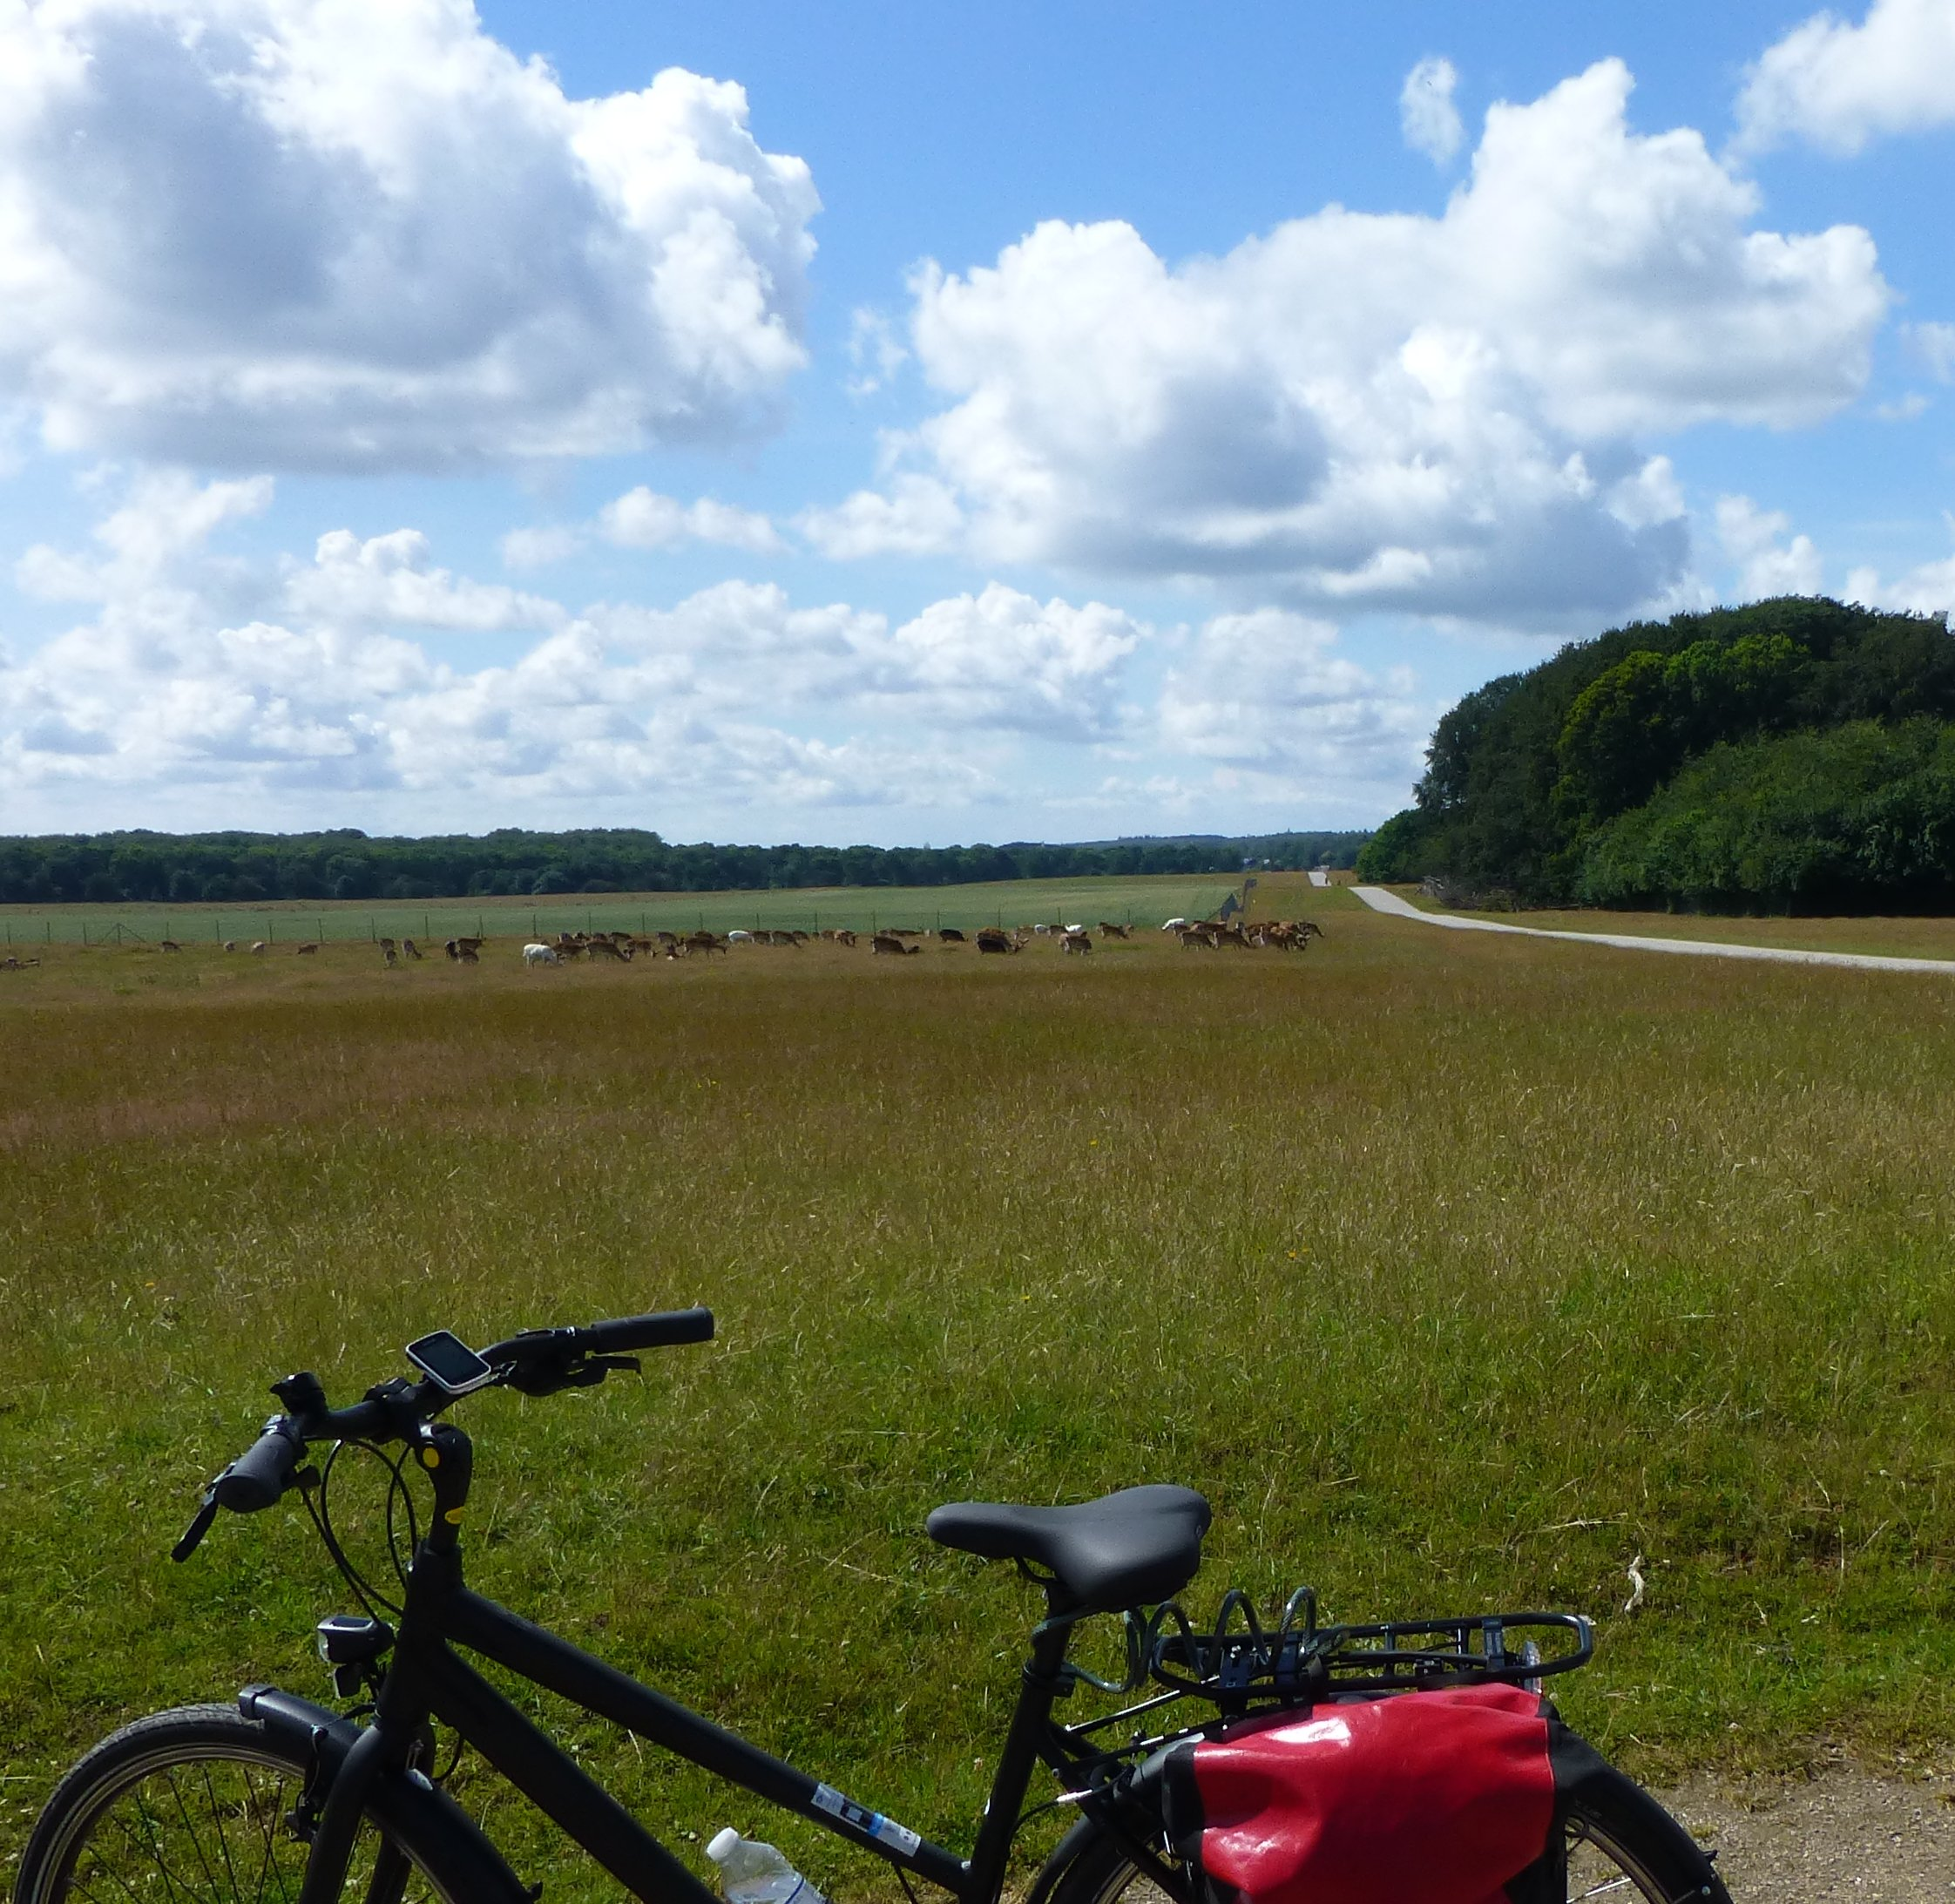 Enjoy the herds of deer on your Kings Trail bike holiday